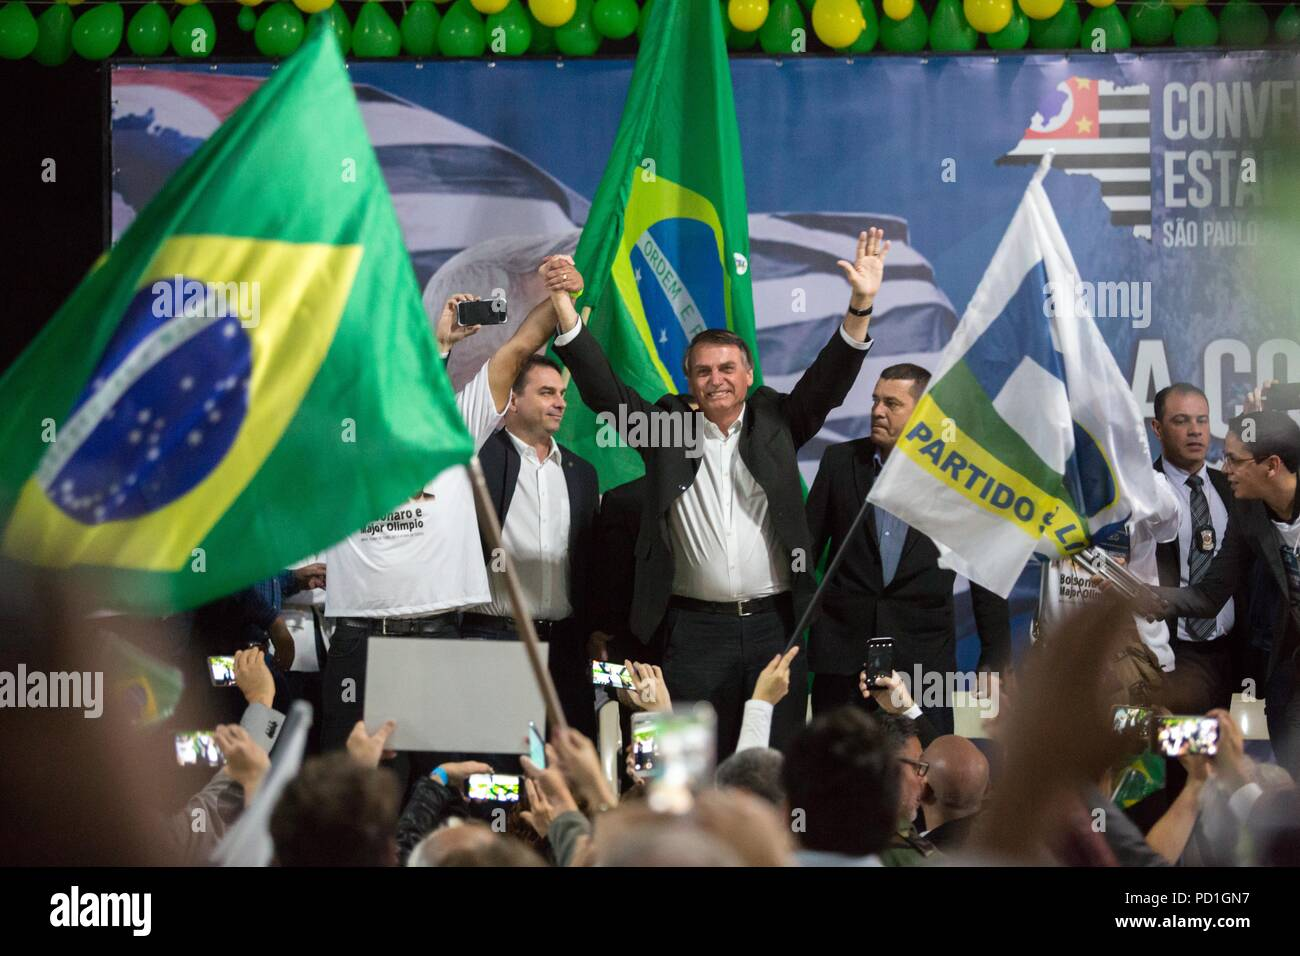 Sao Paulo, Sao Paulo, Brazil. 5th Aug, 2018. JAIR BOLSONARO, candidate for president of Brazil participates in the convention of the PSL (Social Liberal Party), in Sao Paulo, Brazil. The party candidates for deputy and senator attended the event. Credit: Paulo Lopes/ZUMA Wire/Alamy Live News - Stock Image